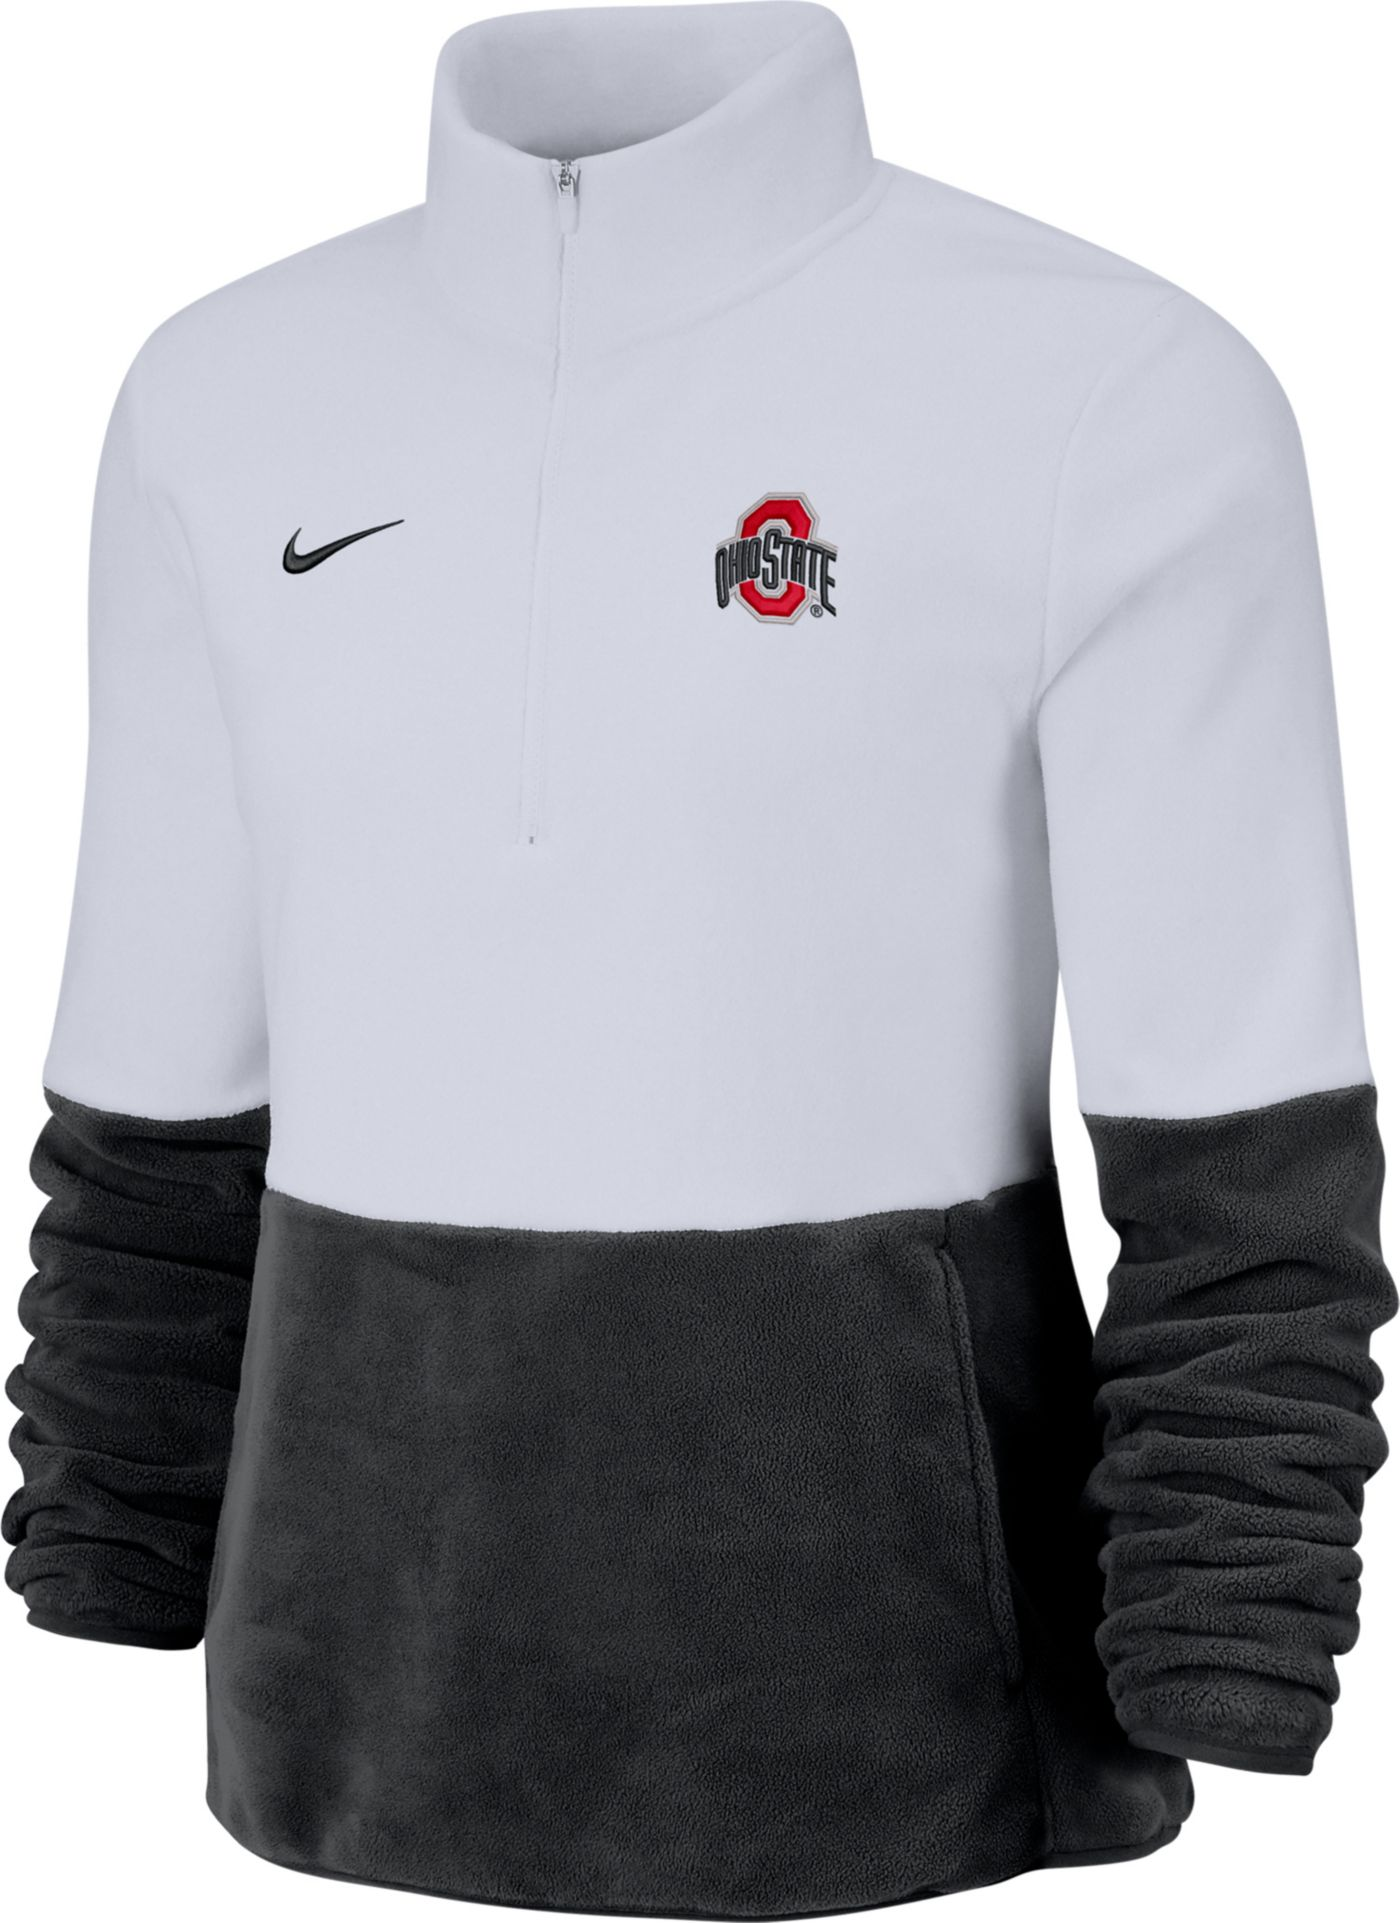 Nike Women's Ohio State Buckeyes Cozy Therma White Half-Zip Fleece